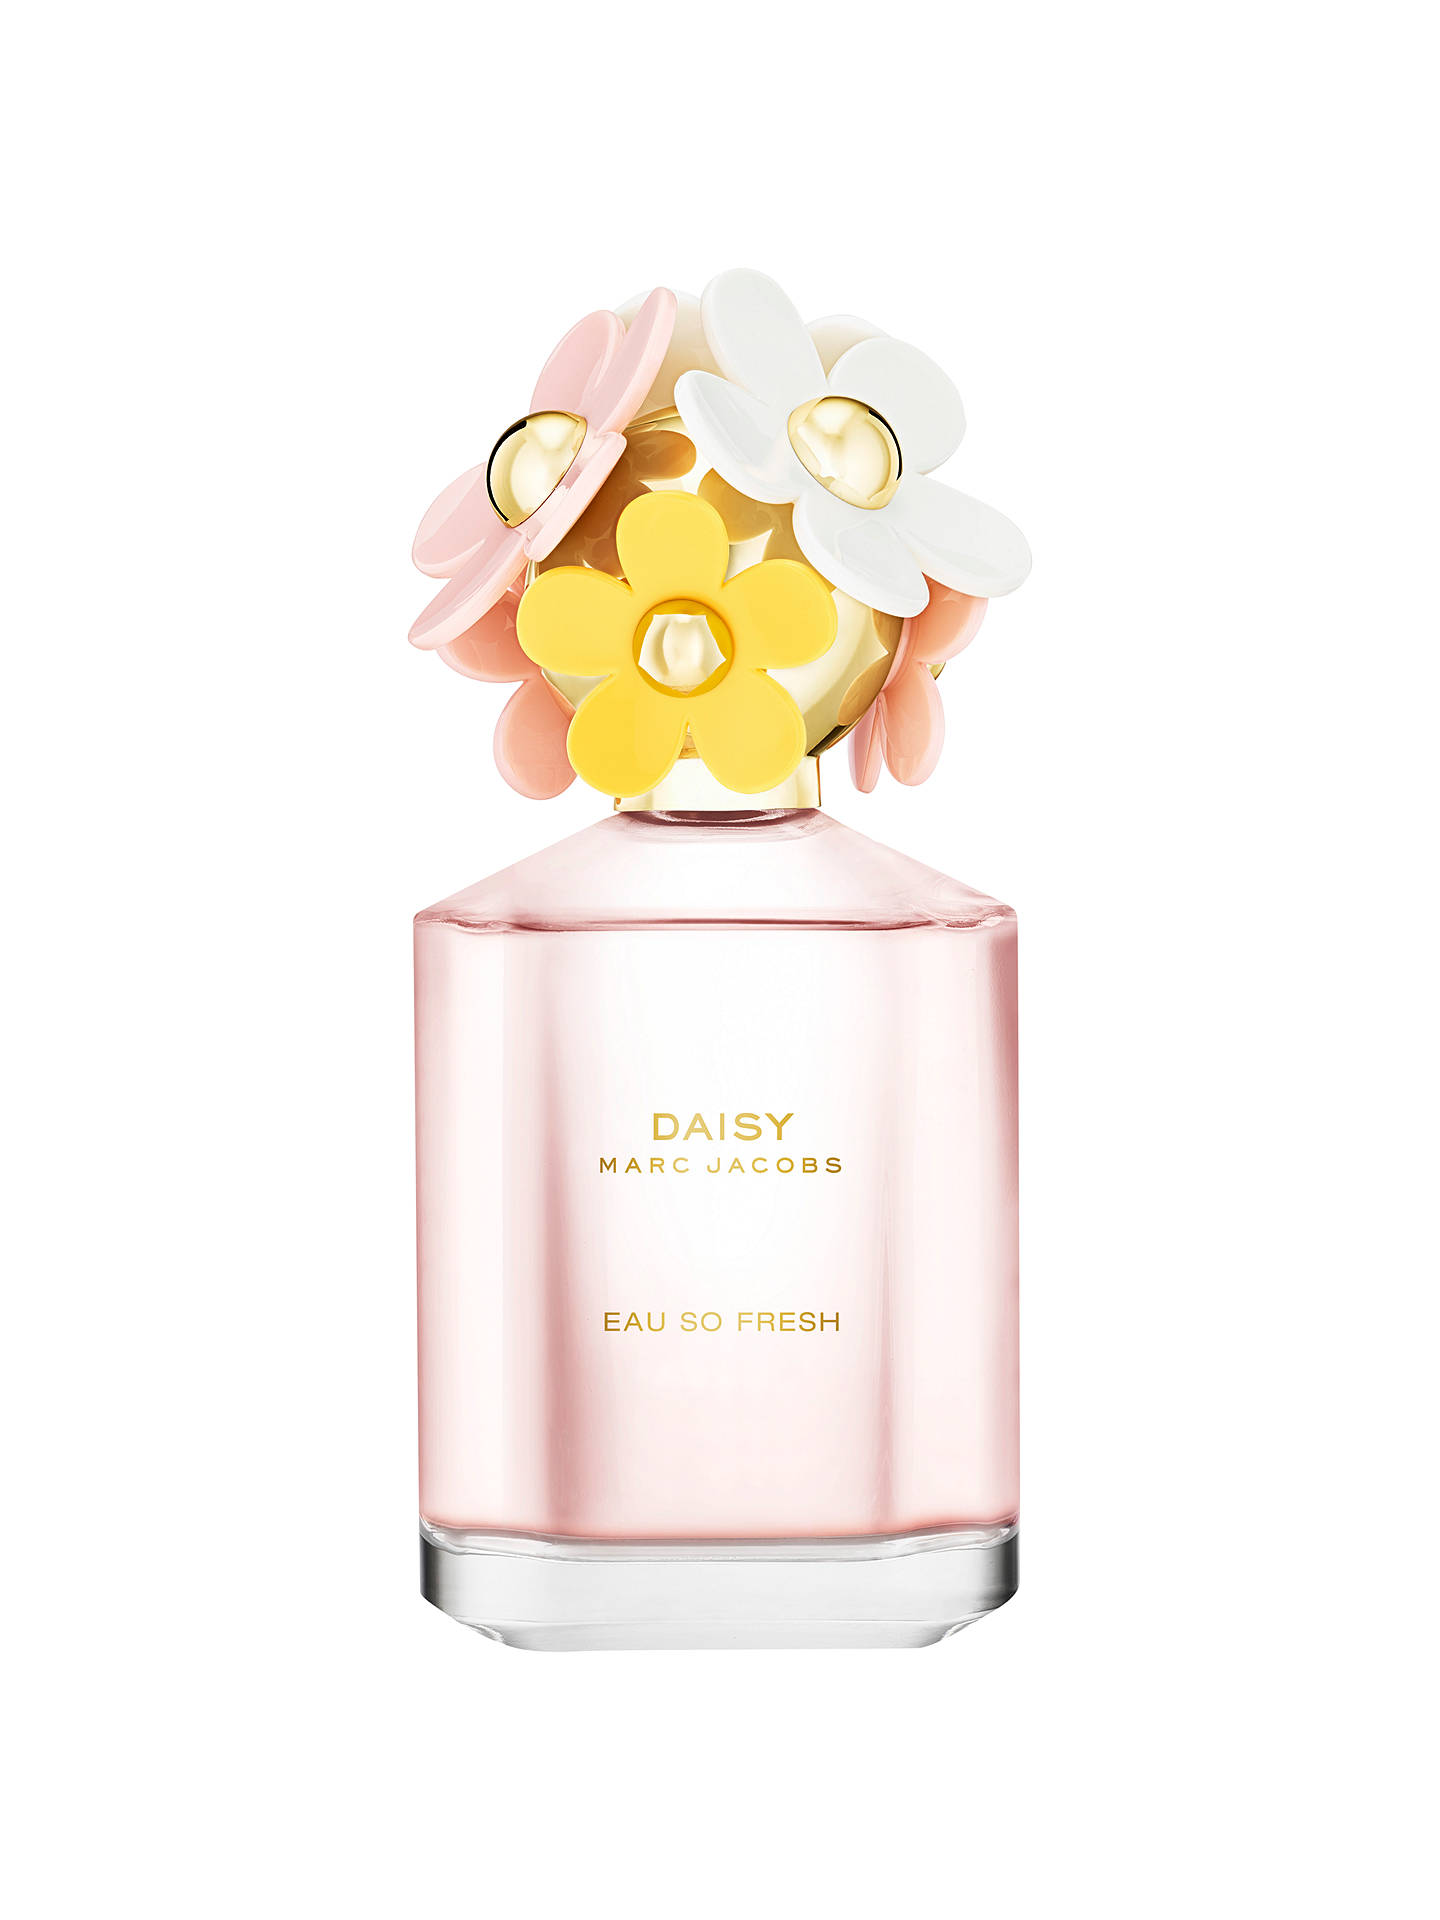 Buy Marc Jacobs Daisy Eau So Fresh Eau de Toilette, 125ml Online at johnlewis.com